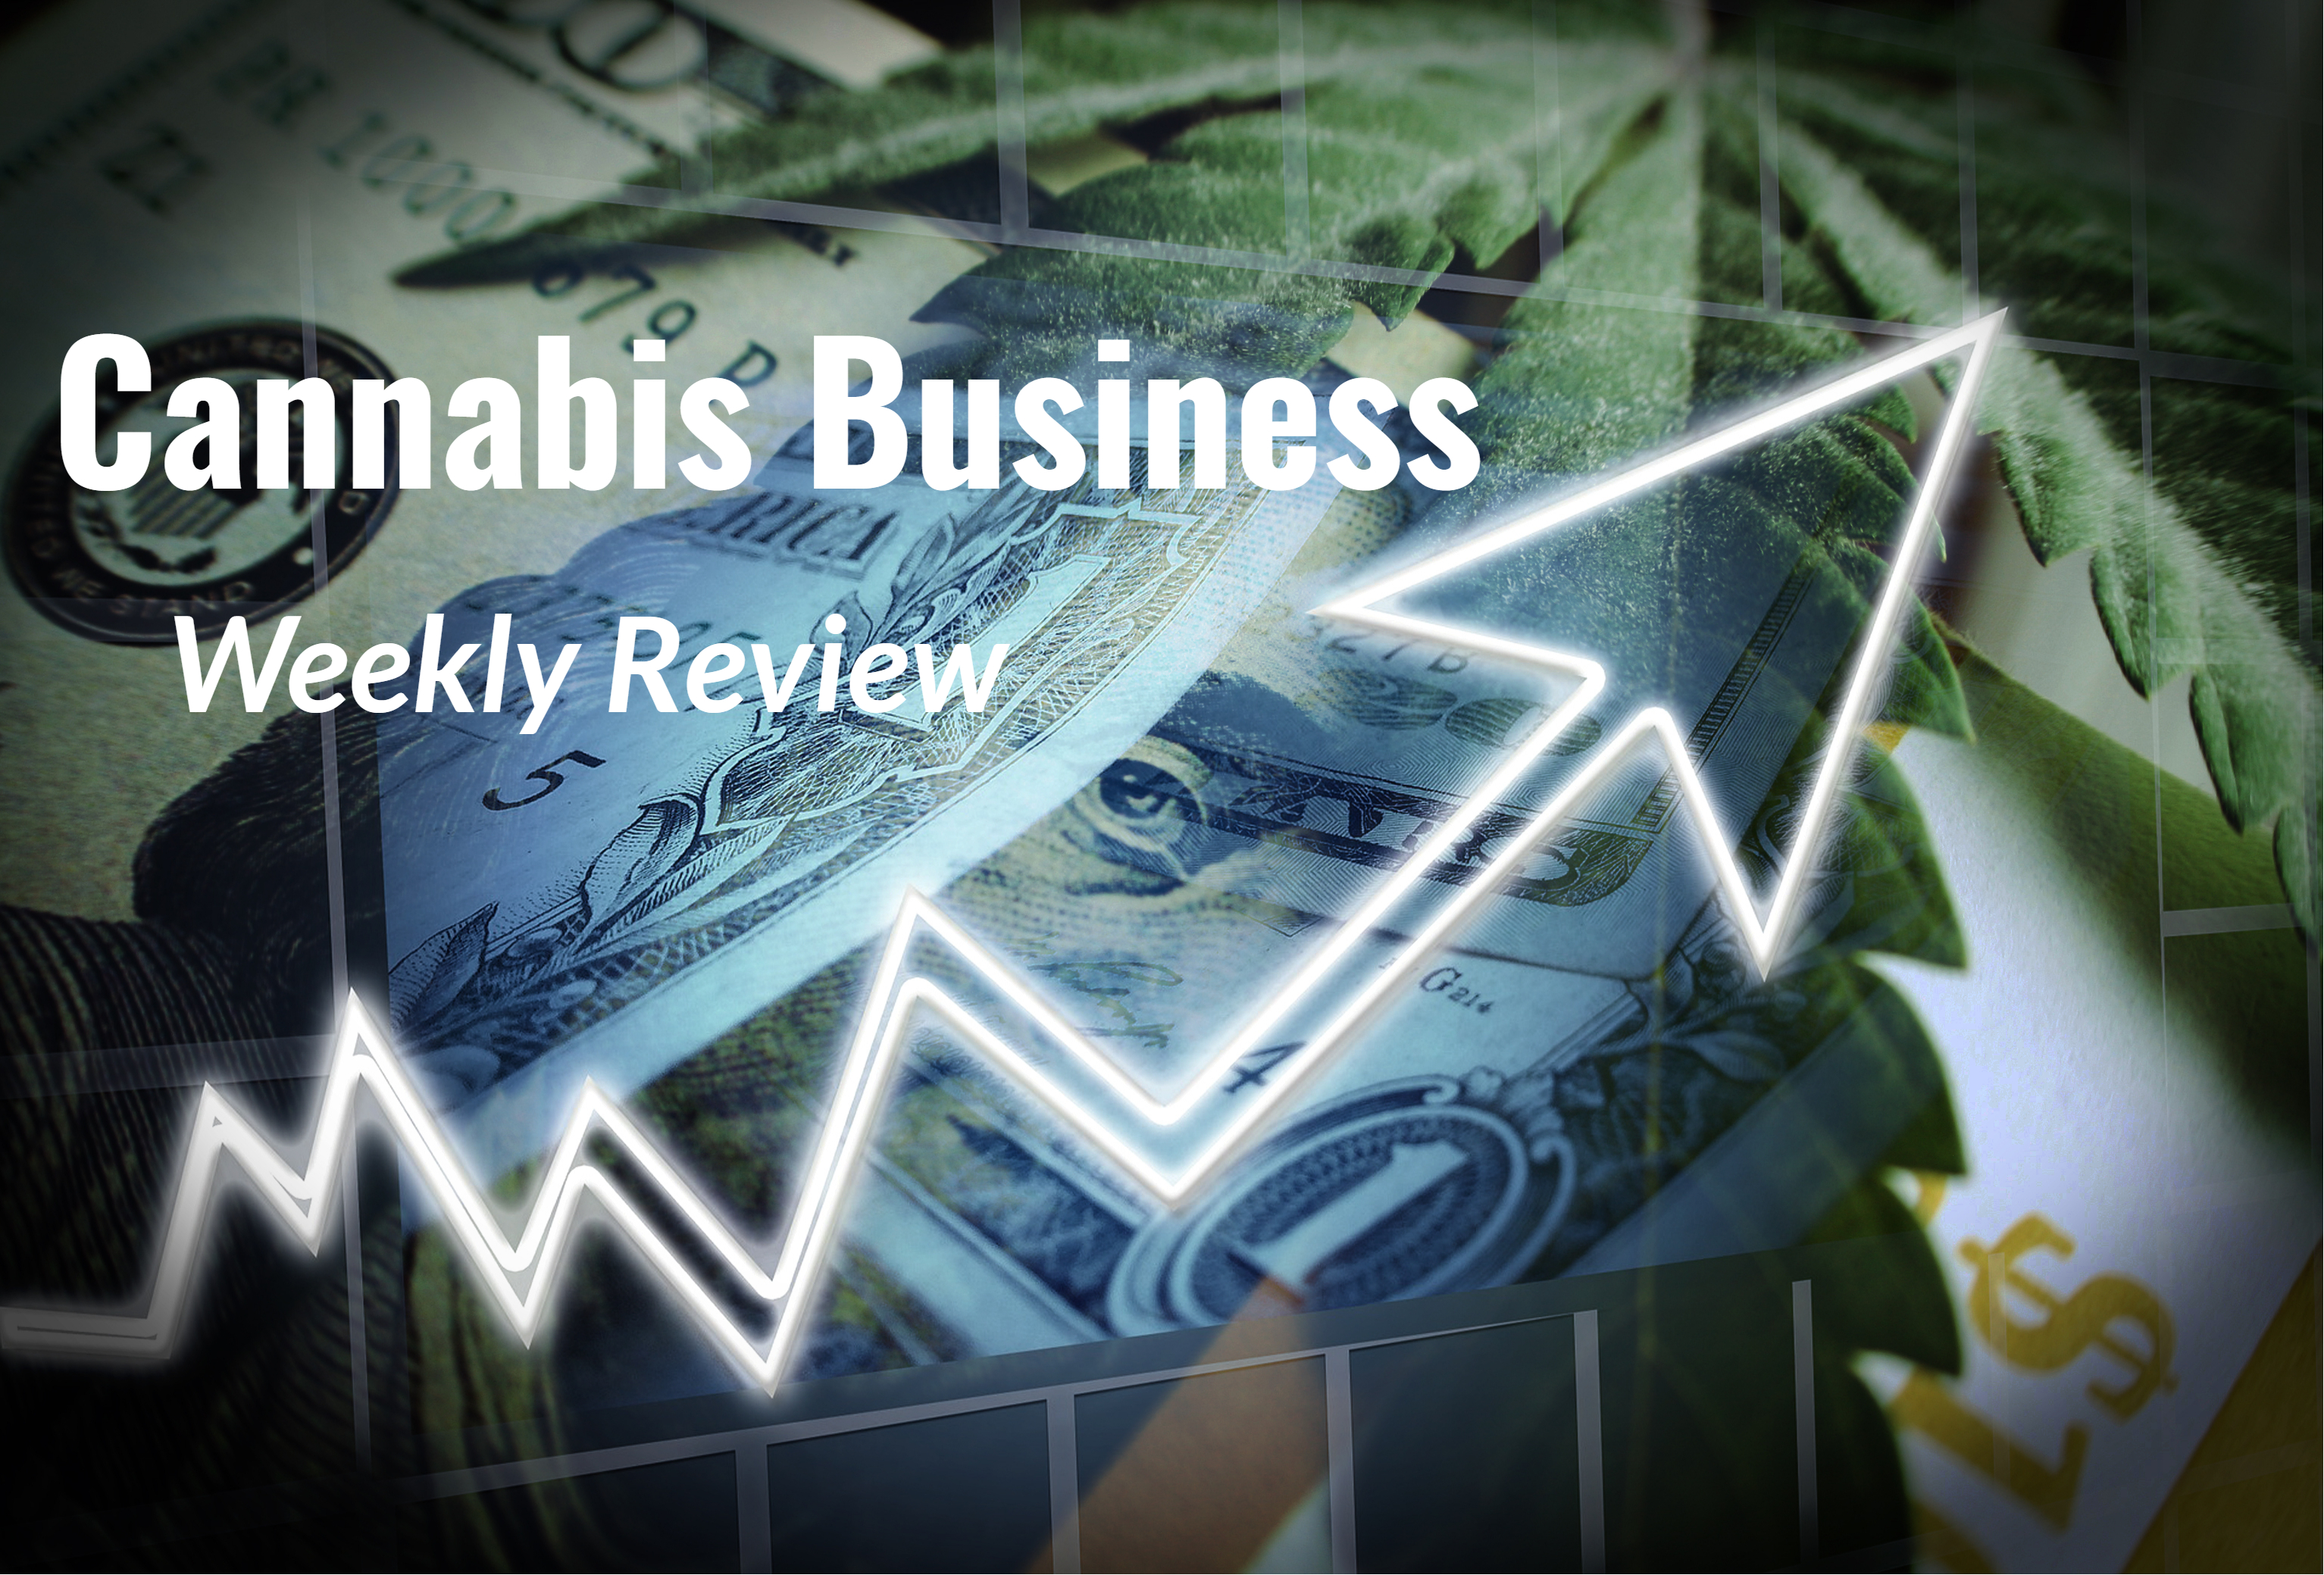 The Business Weekly Review: Updates from the FDA and TSA, CBD in